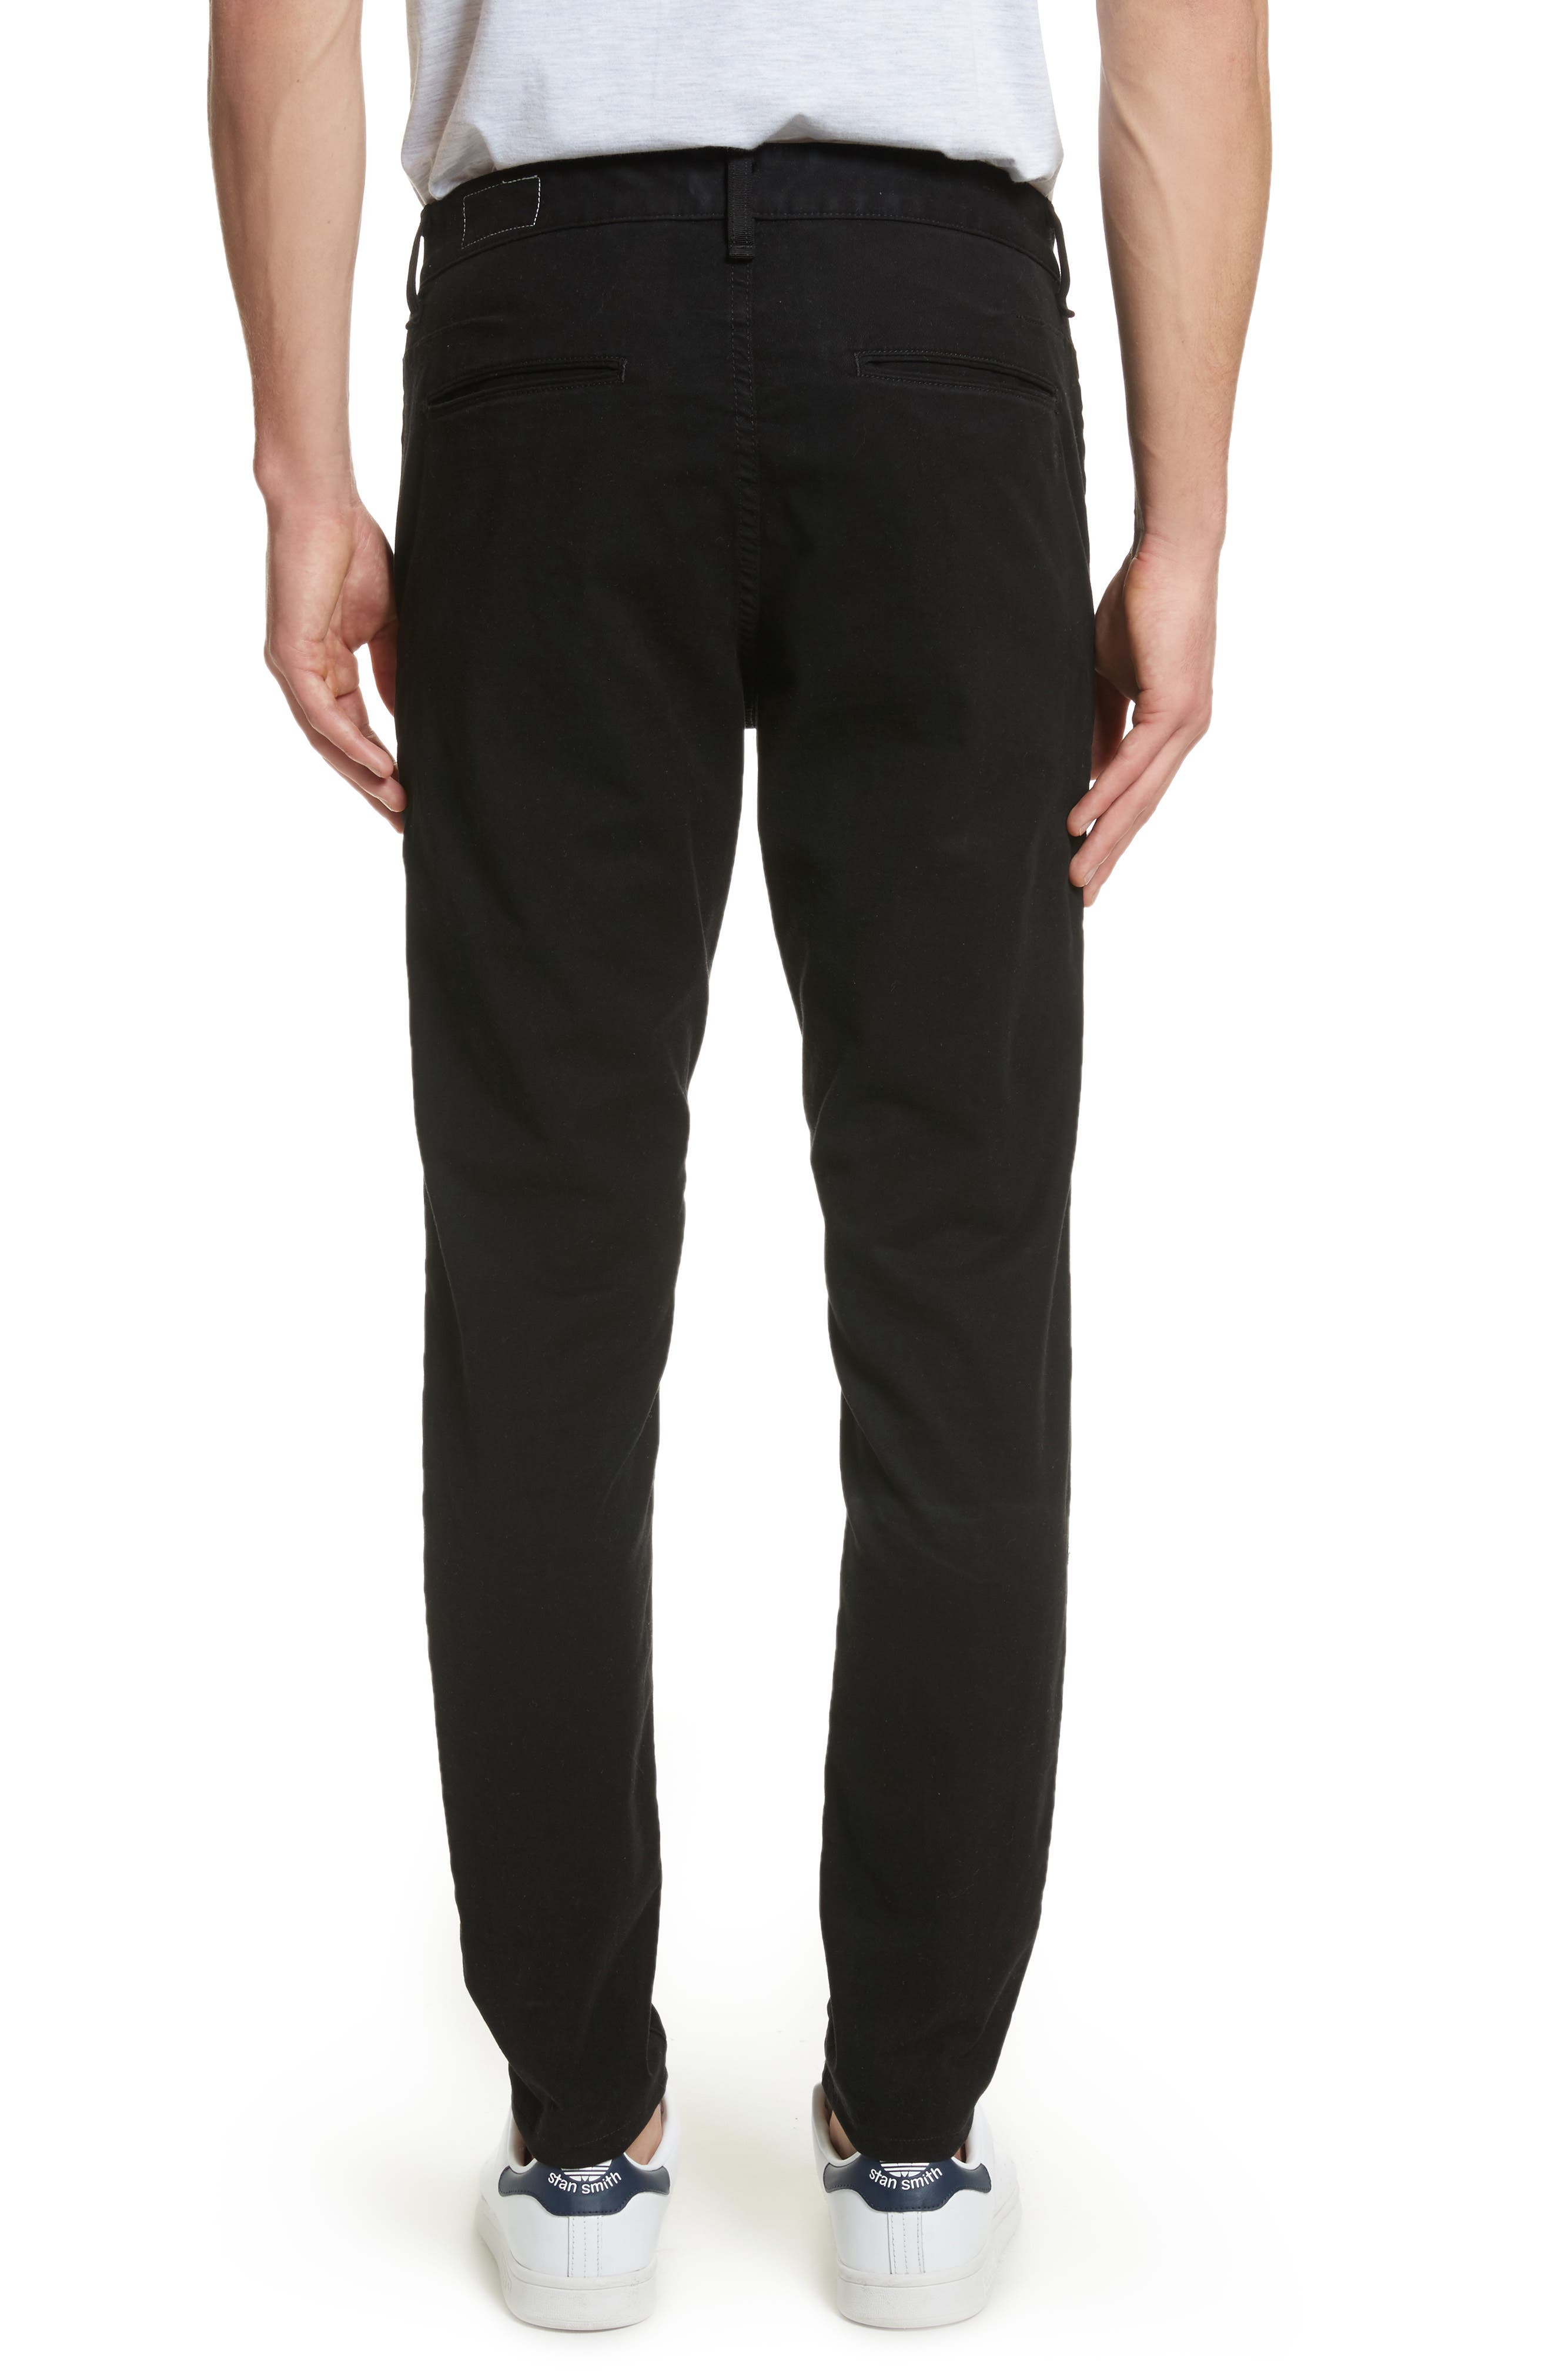 Fit 1 Chinos,                             Alternate thumbnail 2, color,                             BLACK